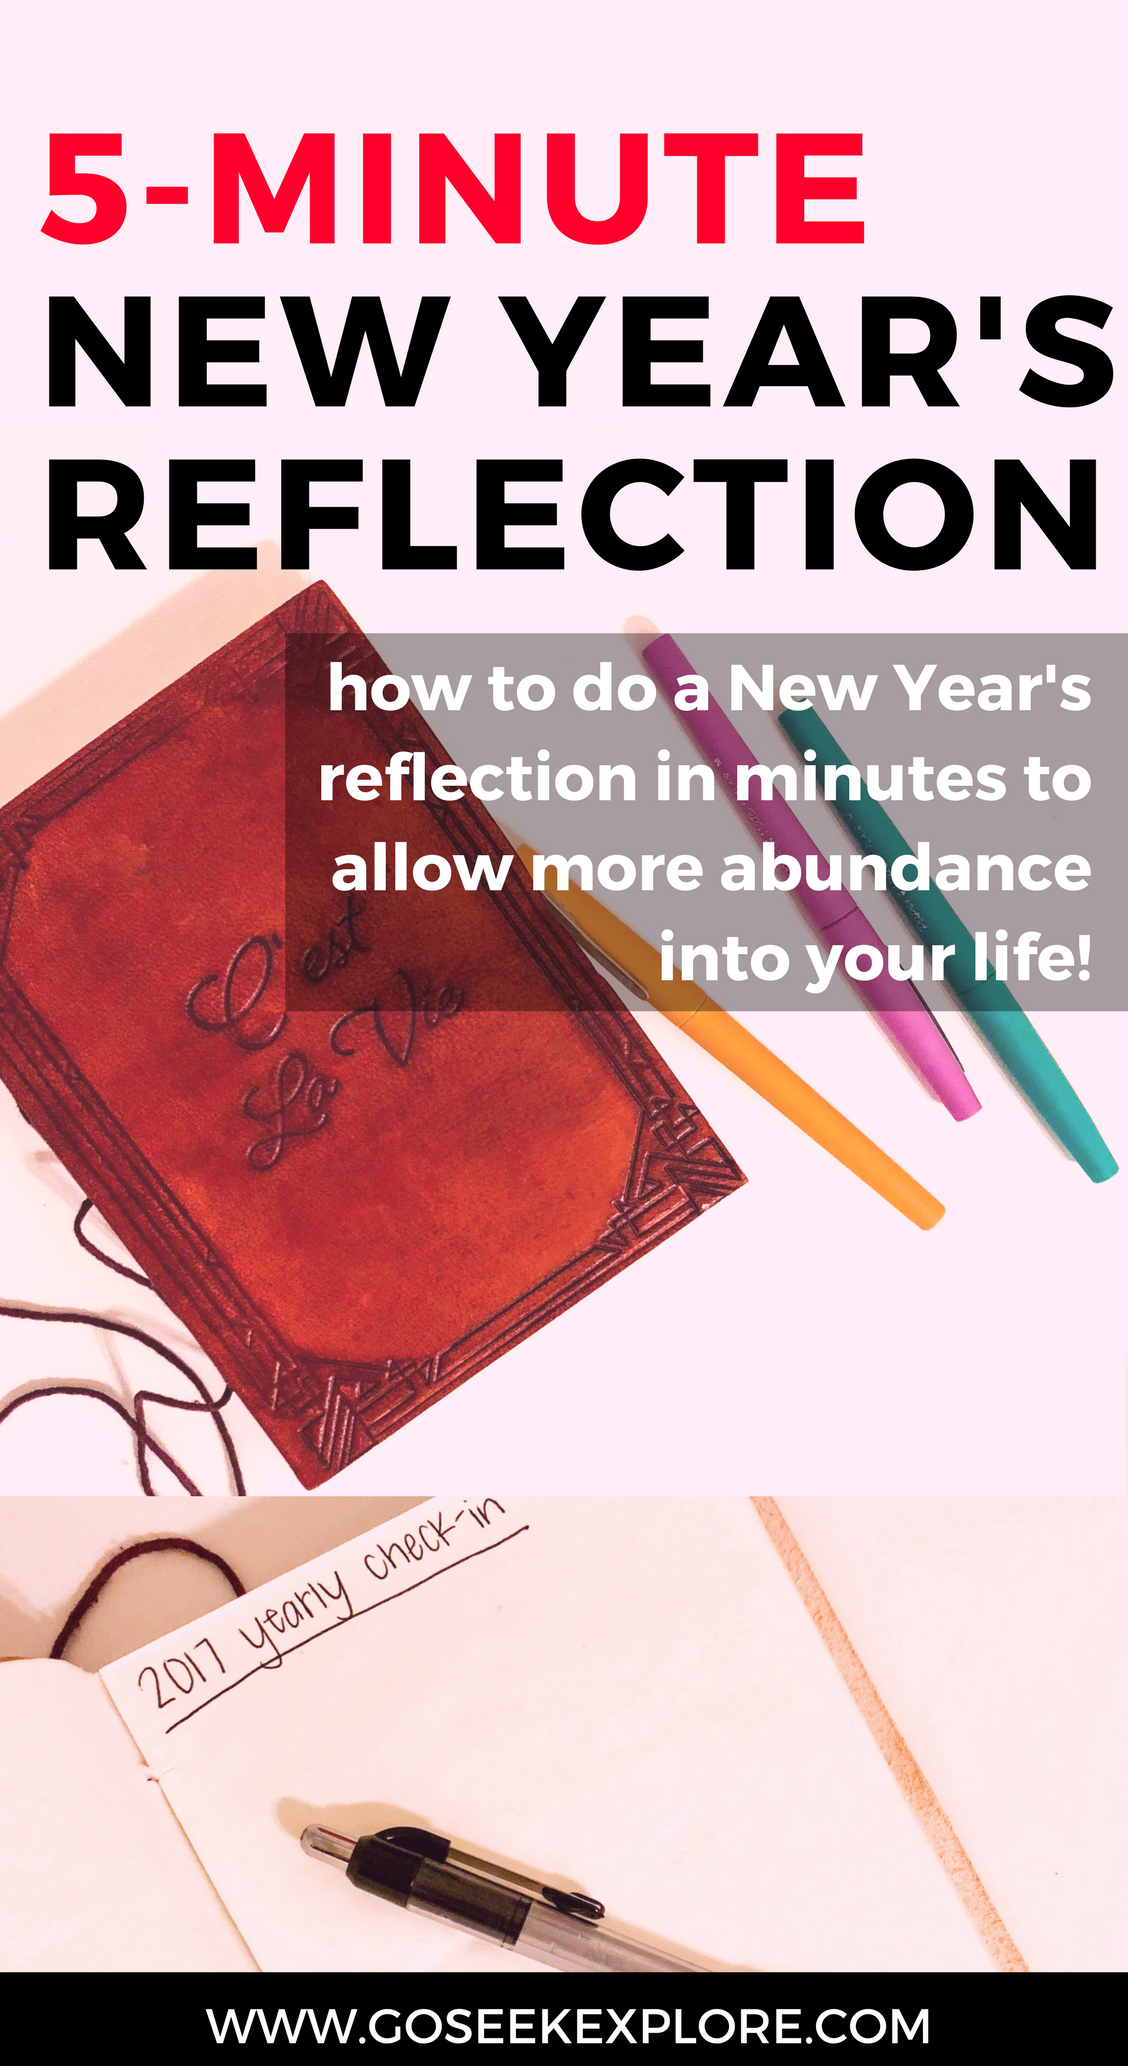 How To do a New Year's Reflection in Only Five Minutes - Soothi Journal Review - goseekexplore.com | five-minute-new-years-reflection